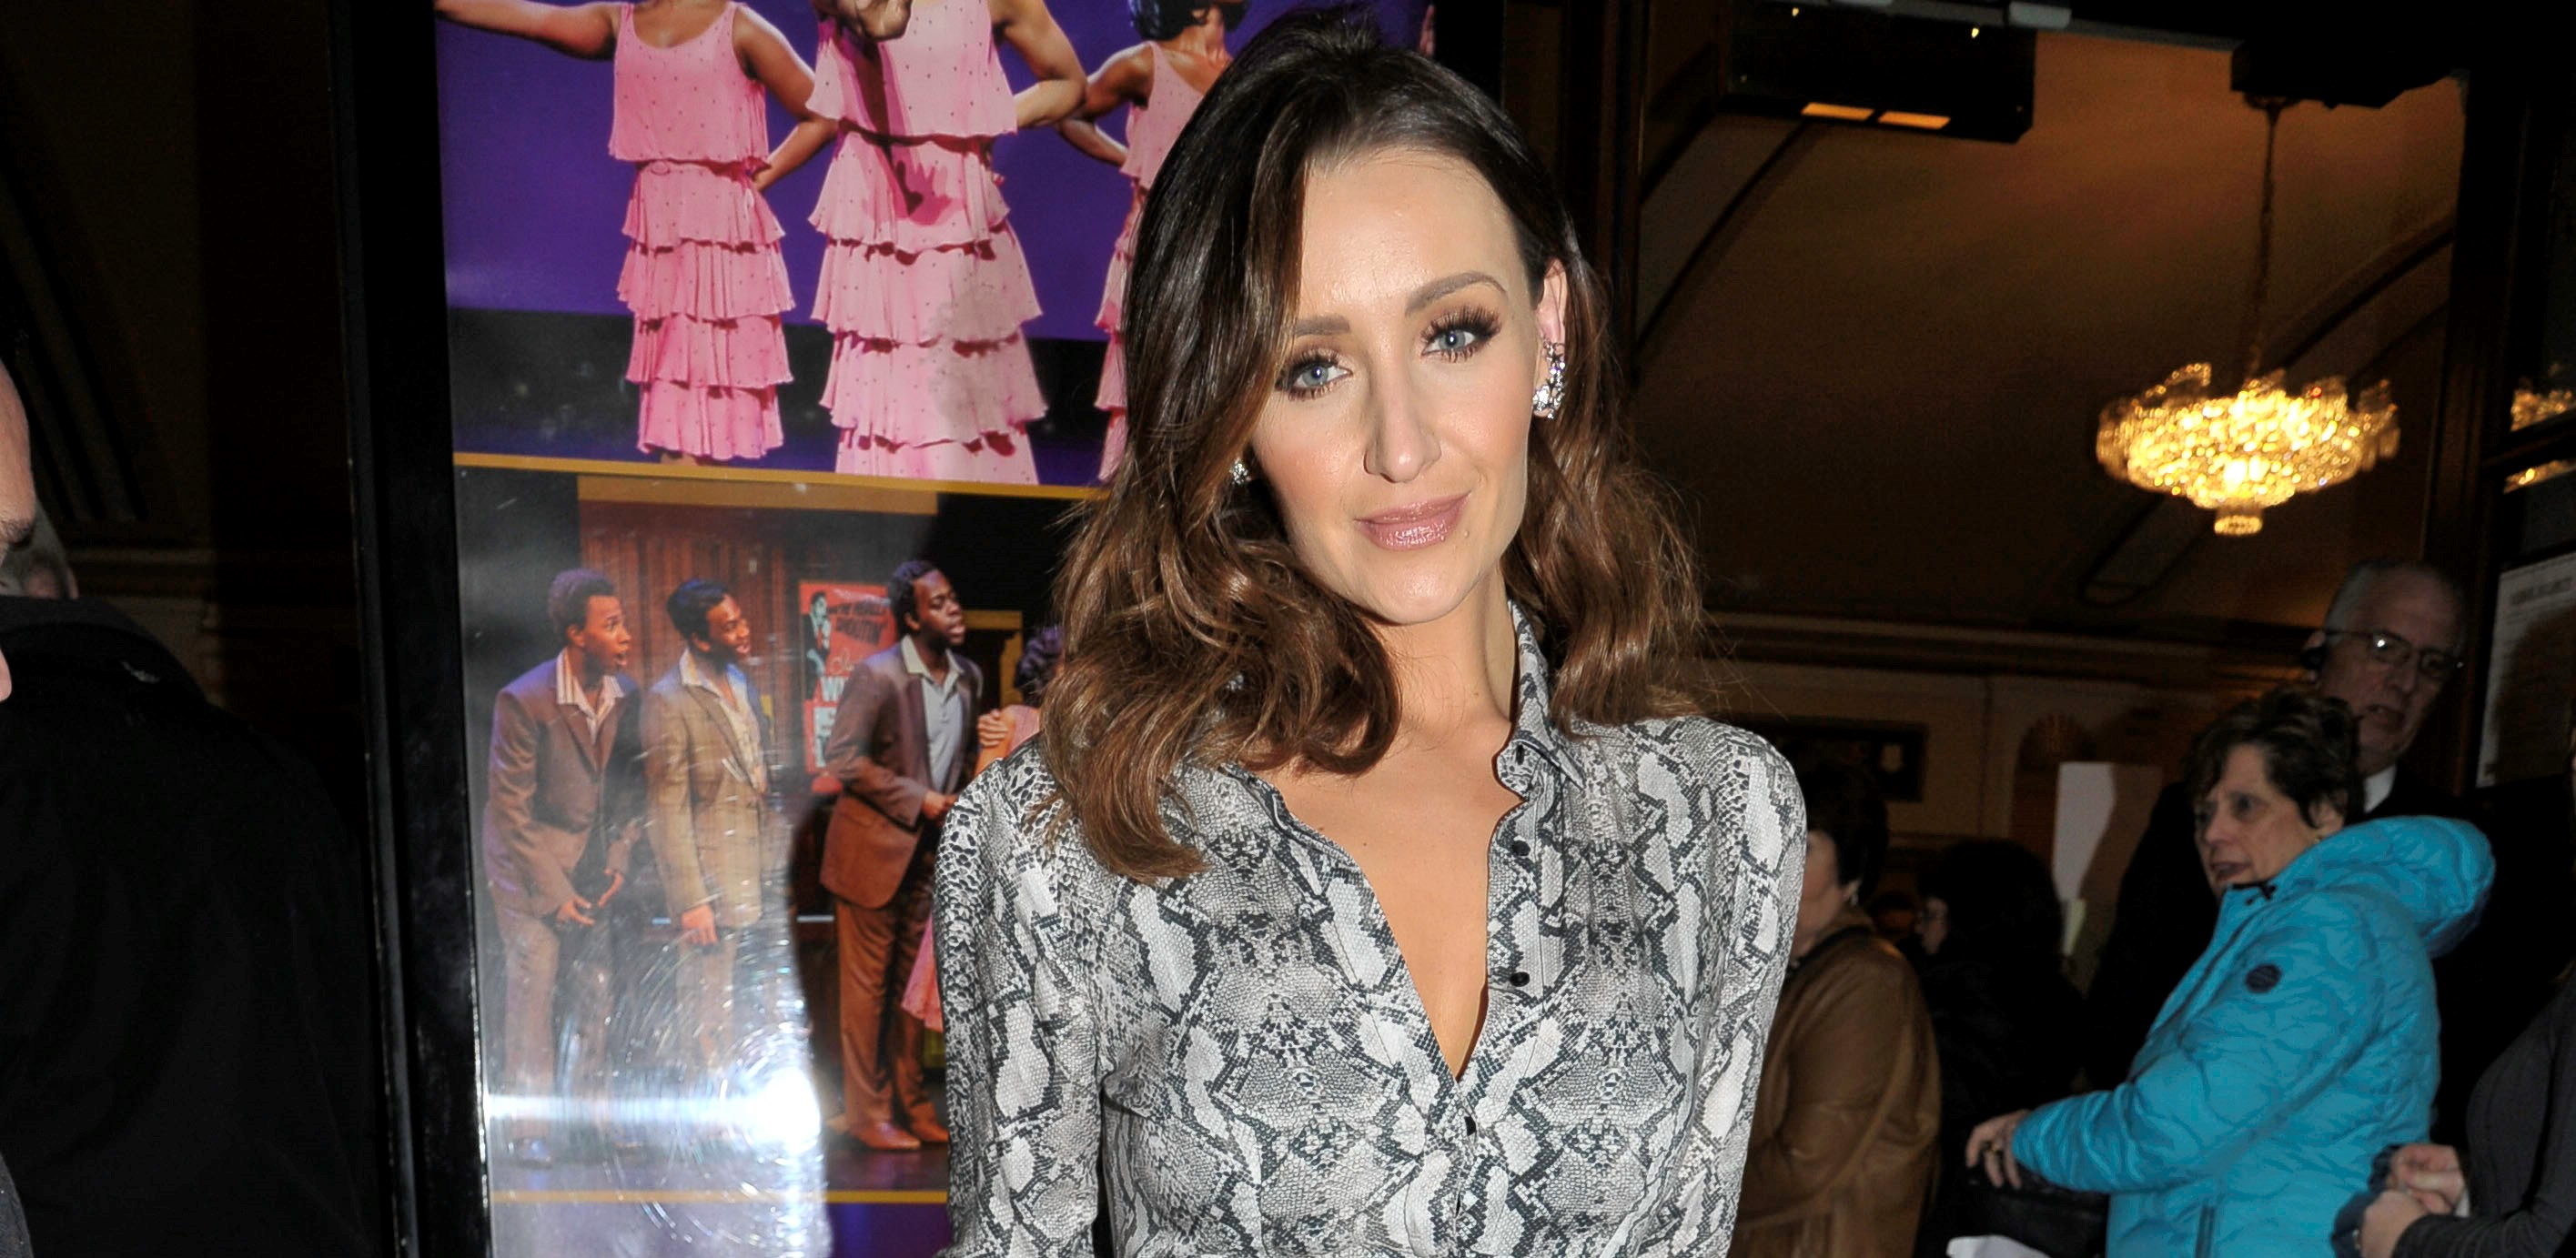 Catherine Tyldesley says her son is growing up too quickly as she shares posed pic